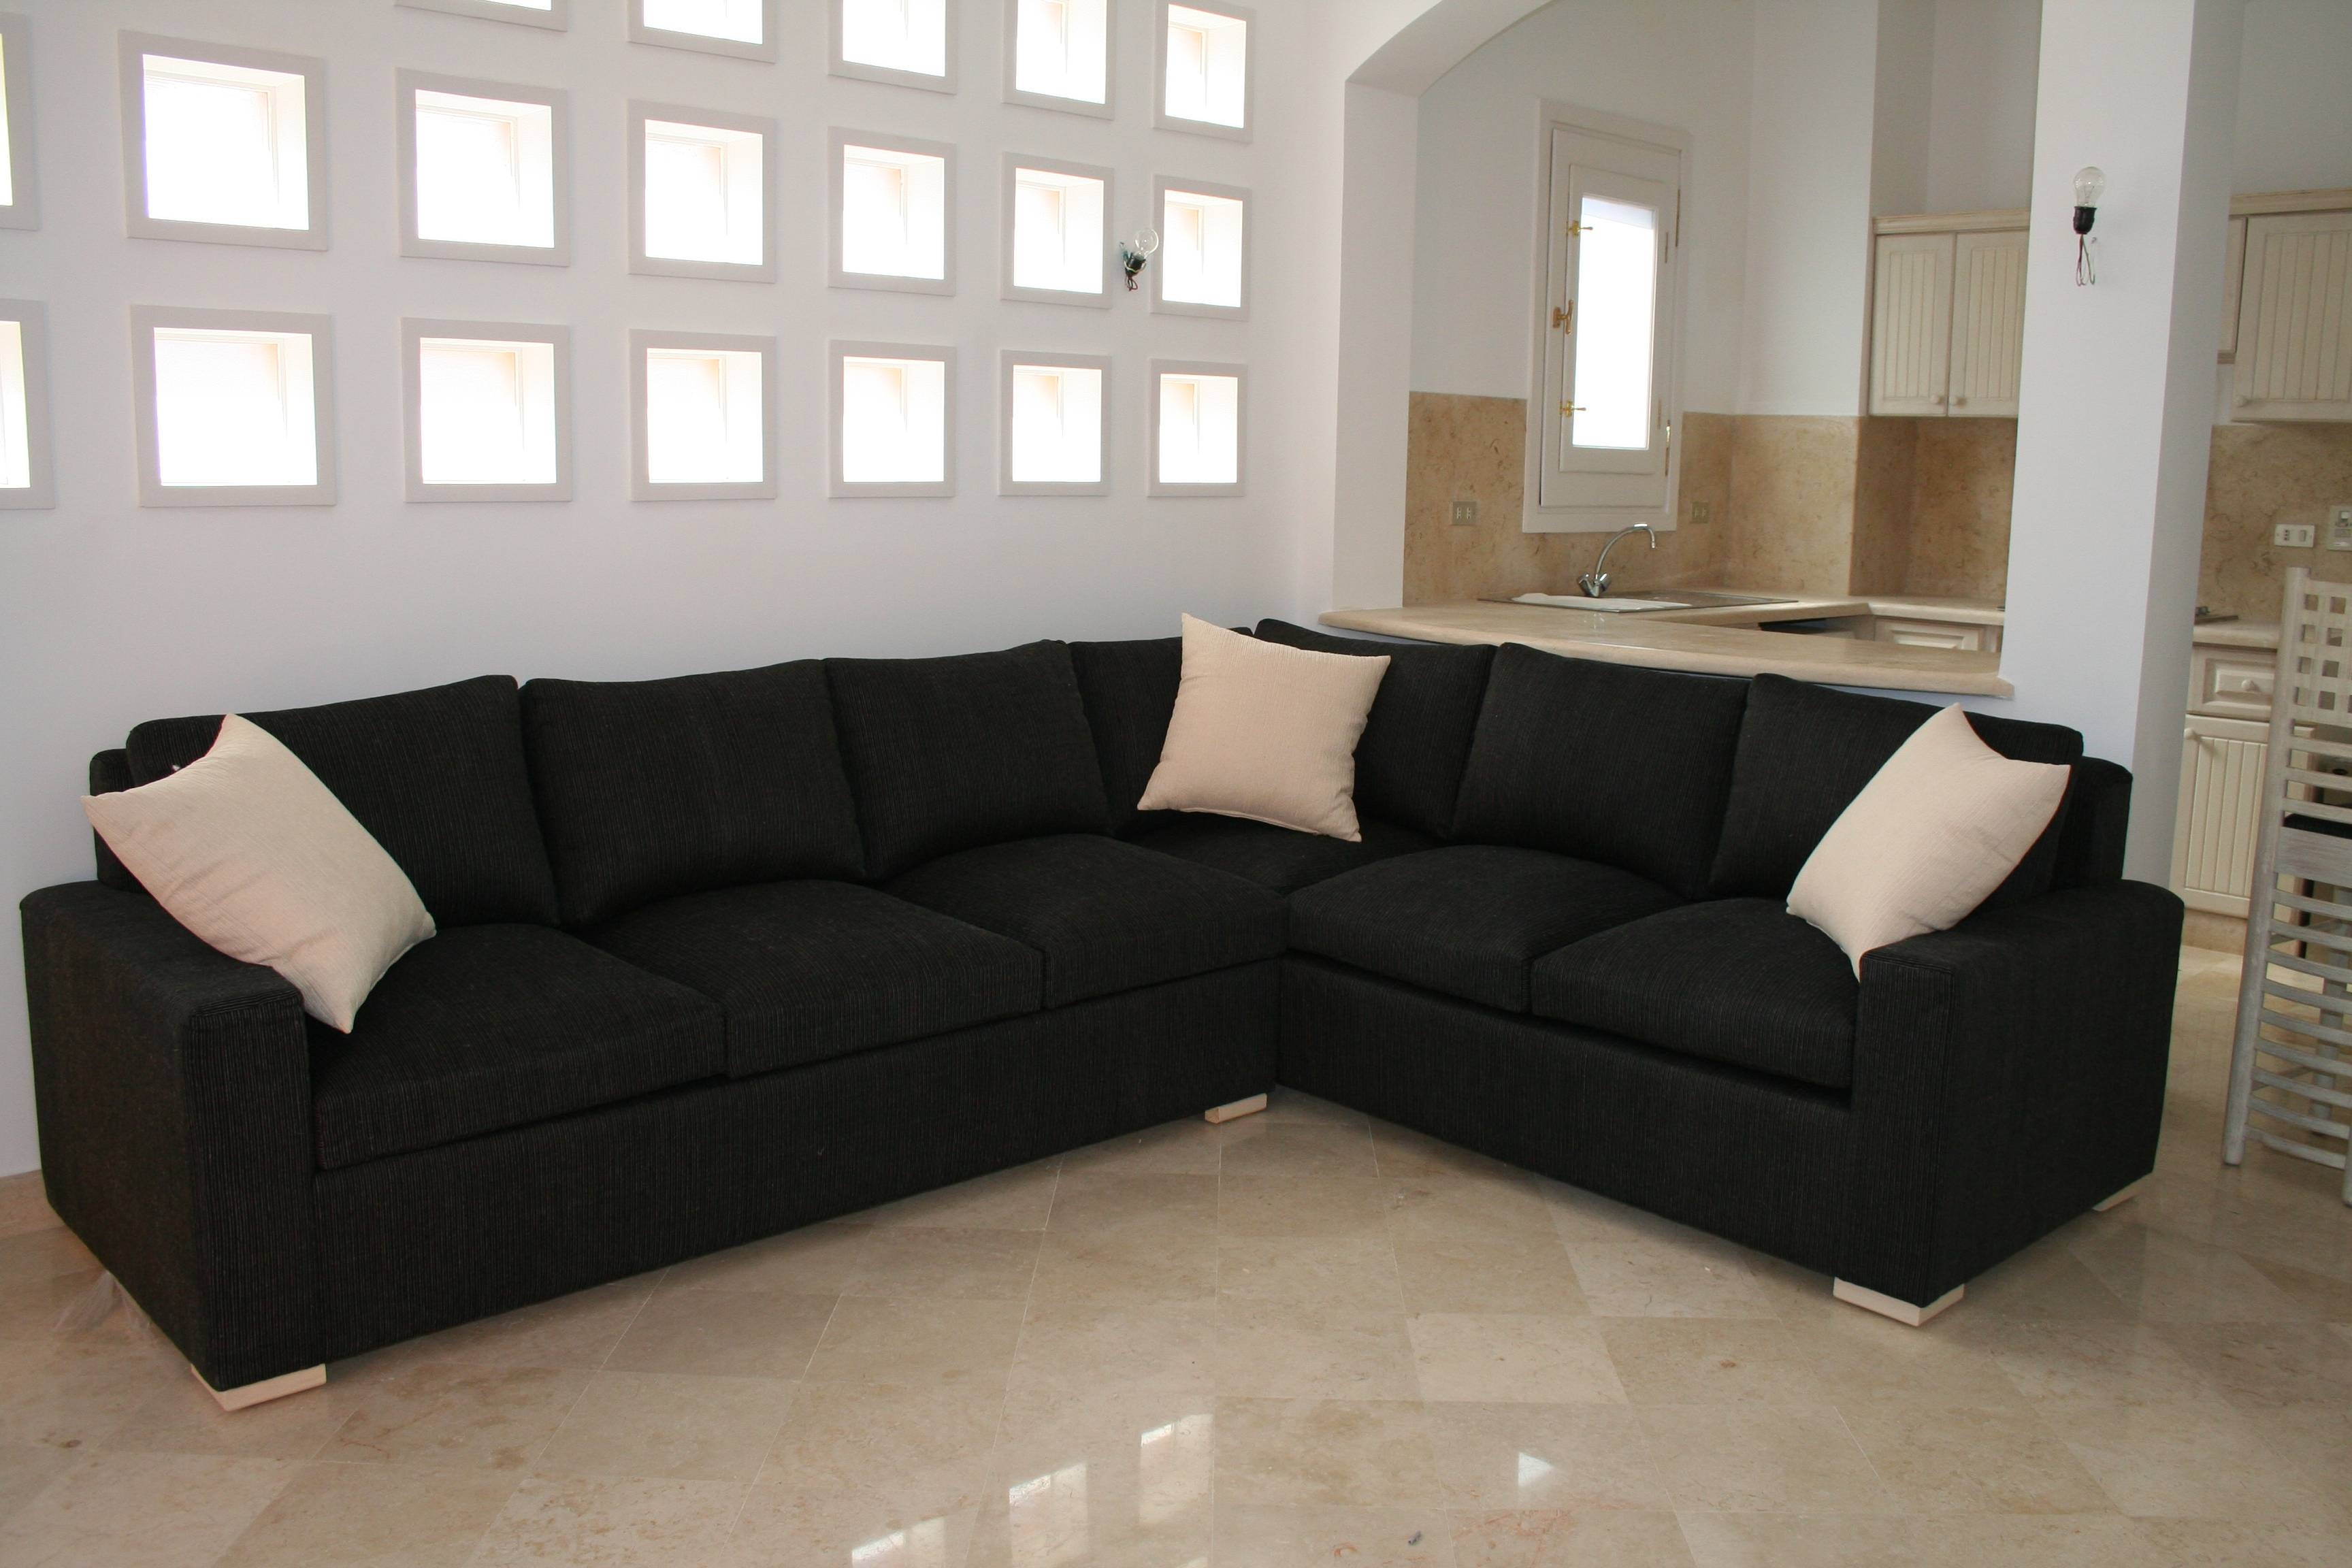 Black Microfiber L Shaped Sectional Sofa With Track Armrest Using with regard to Small L-Shaped Sectional Sofas (Image 3 of 15)